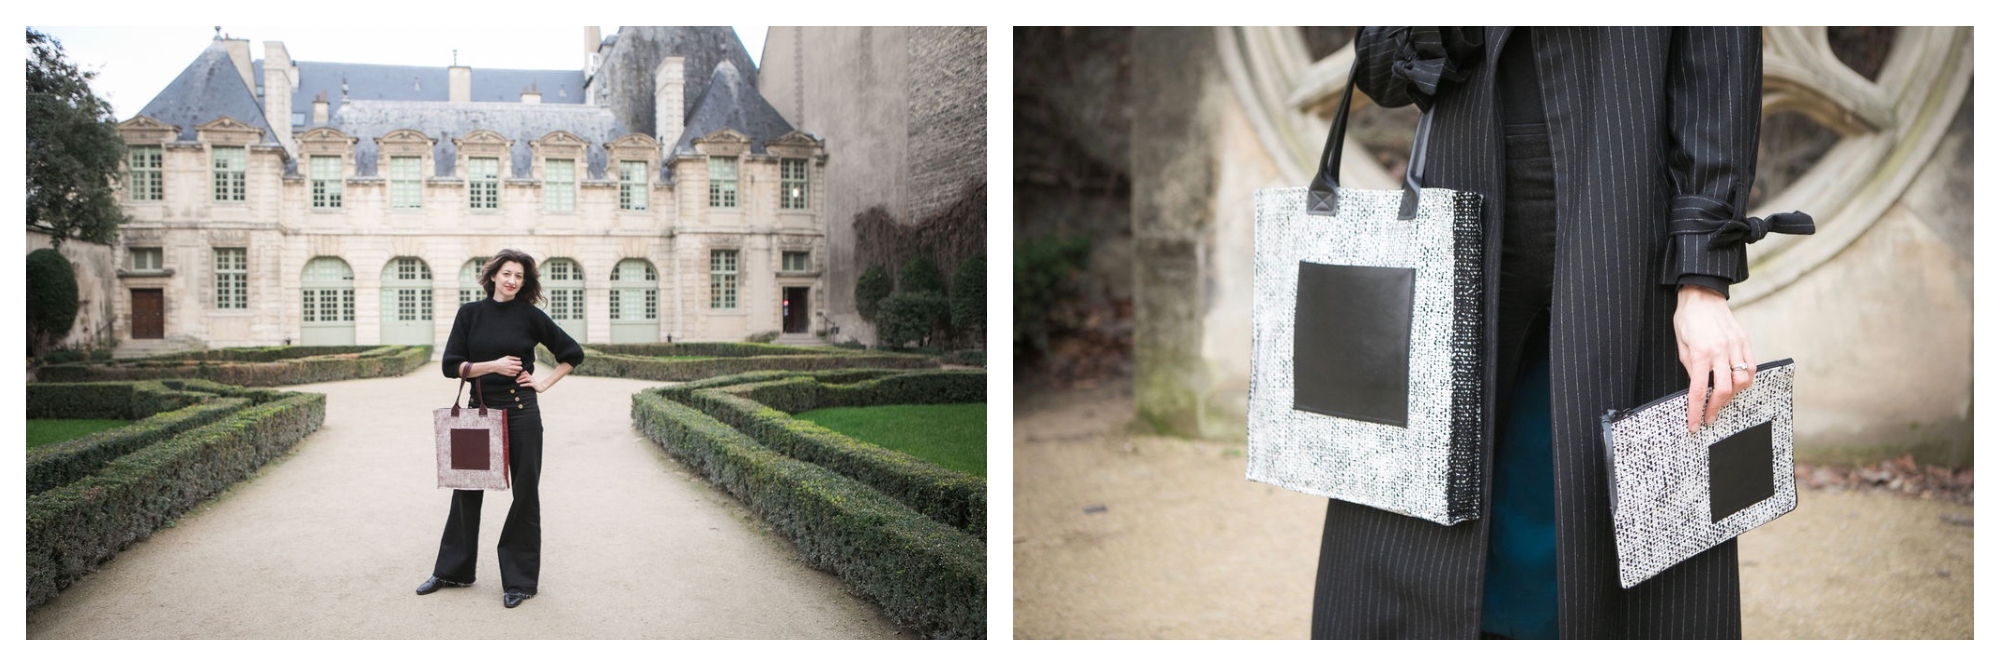 On left: Kasia Dietz, founder of her eponymous handbag line, enjoys a walk through the gardens of Hôtel de Sully in Paris' Marais neighborhood. On right: a model wears a Kasia Dietz black and white tote bag with a clutch to match.